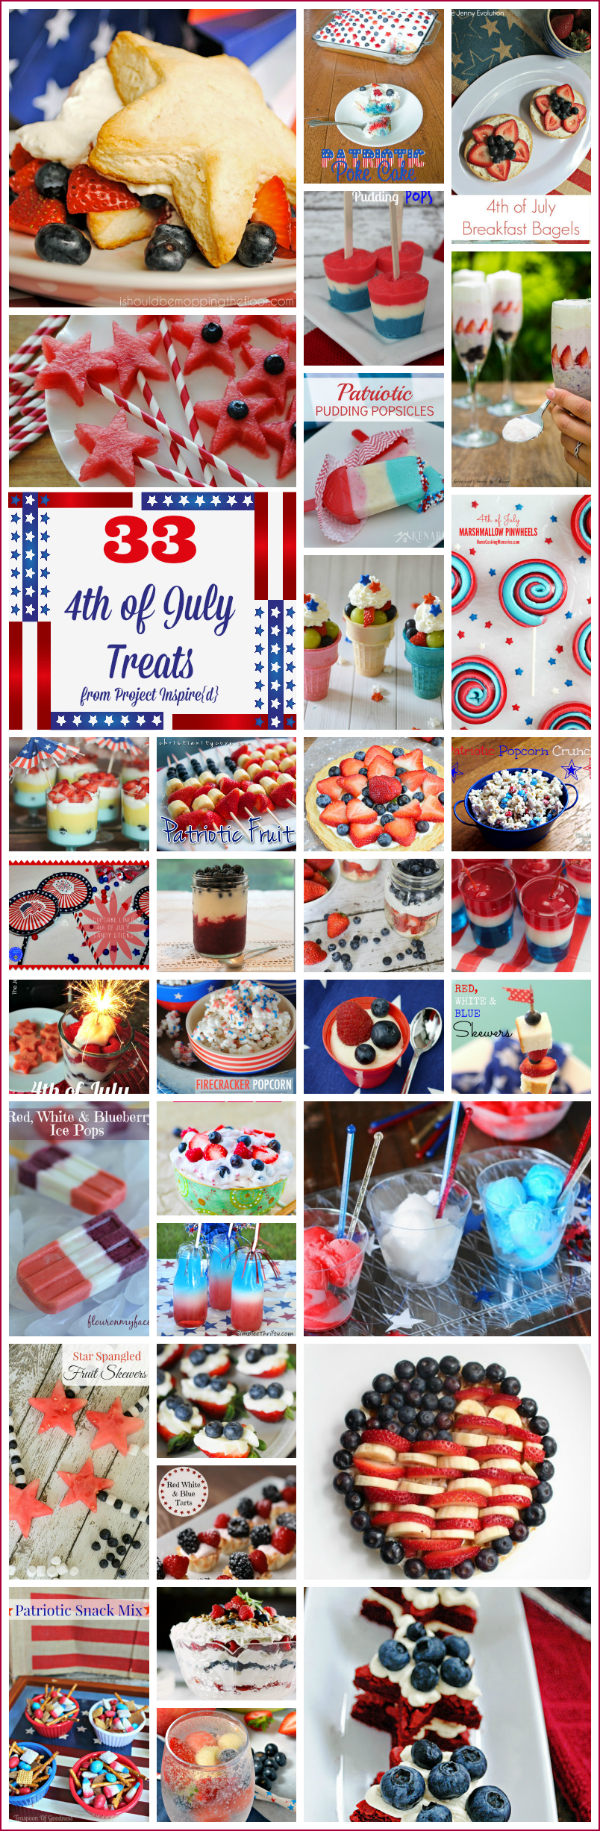 33 Sweet and Tasty 4th of July Recipes